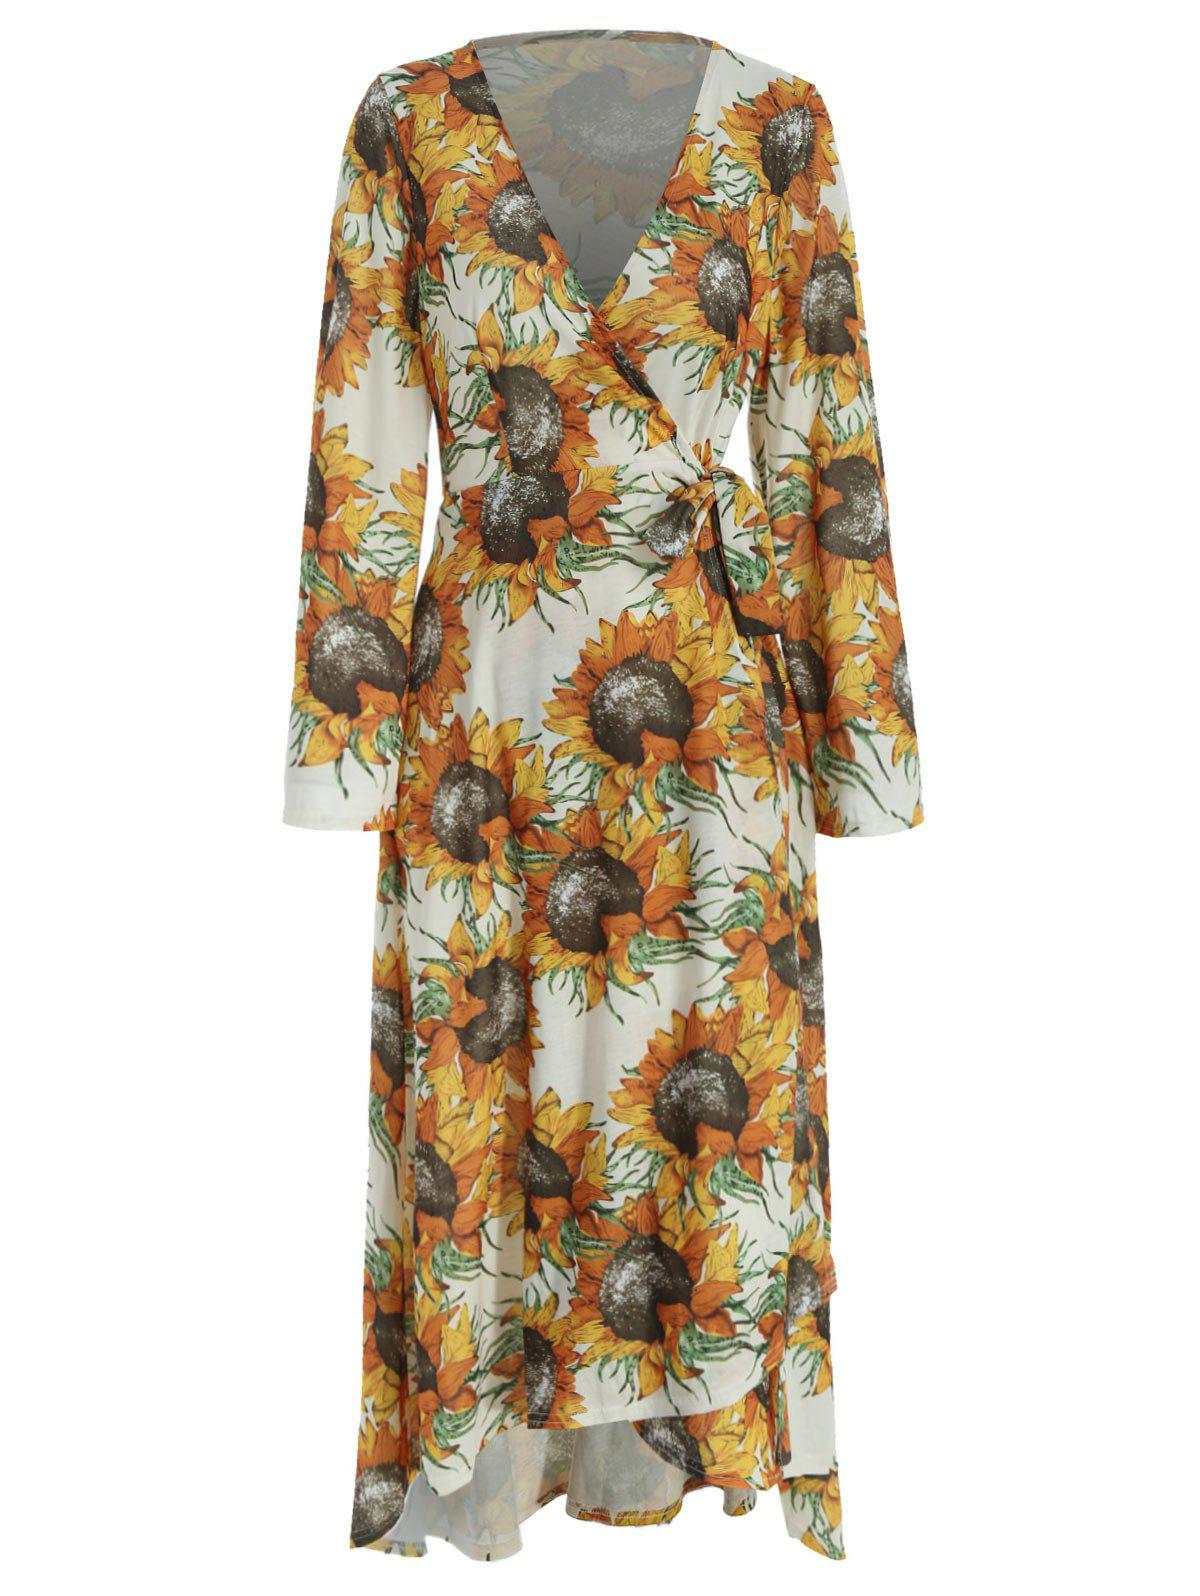 Sunflower Print Wrap Dress - multicolor S